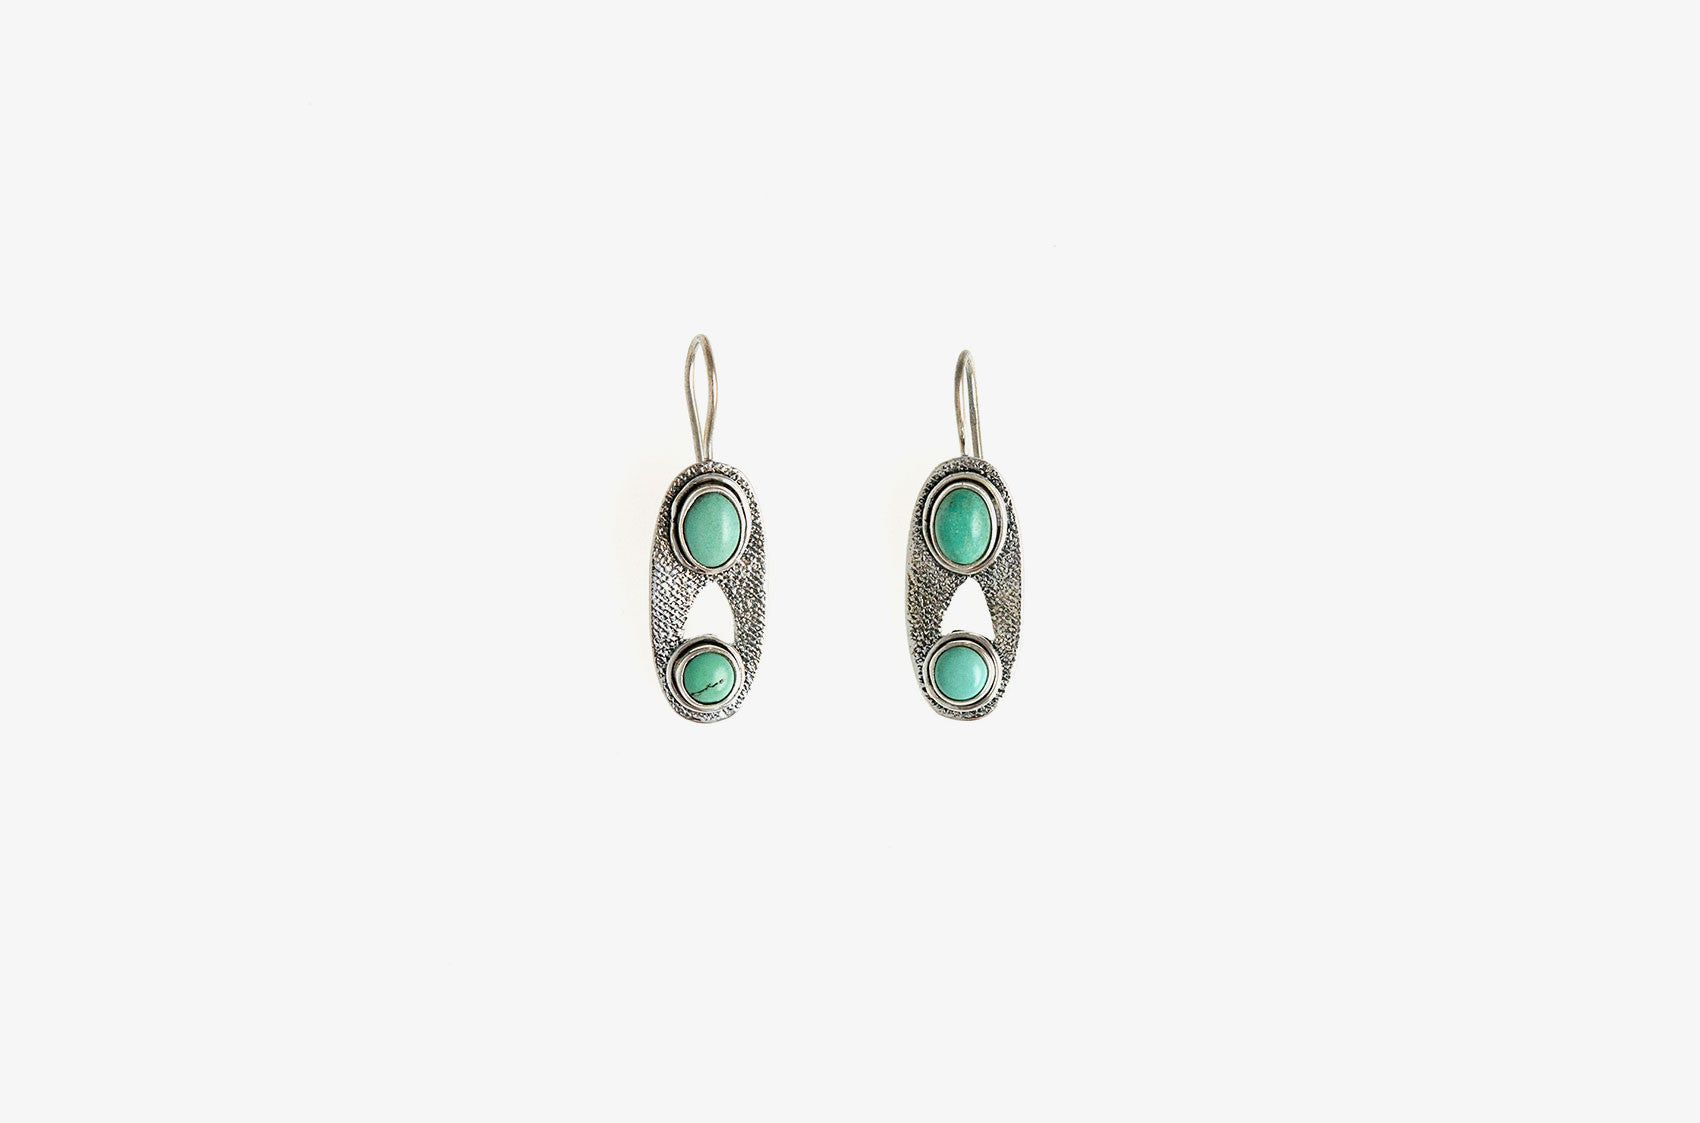 Silver & Stone. Oval turquoise earrings